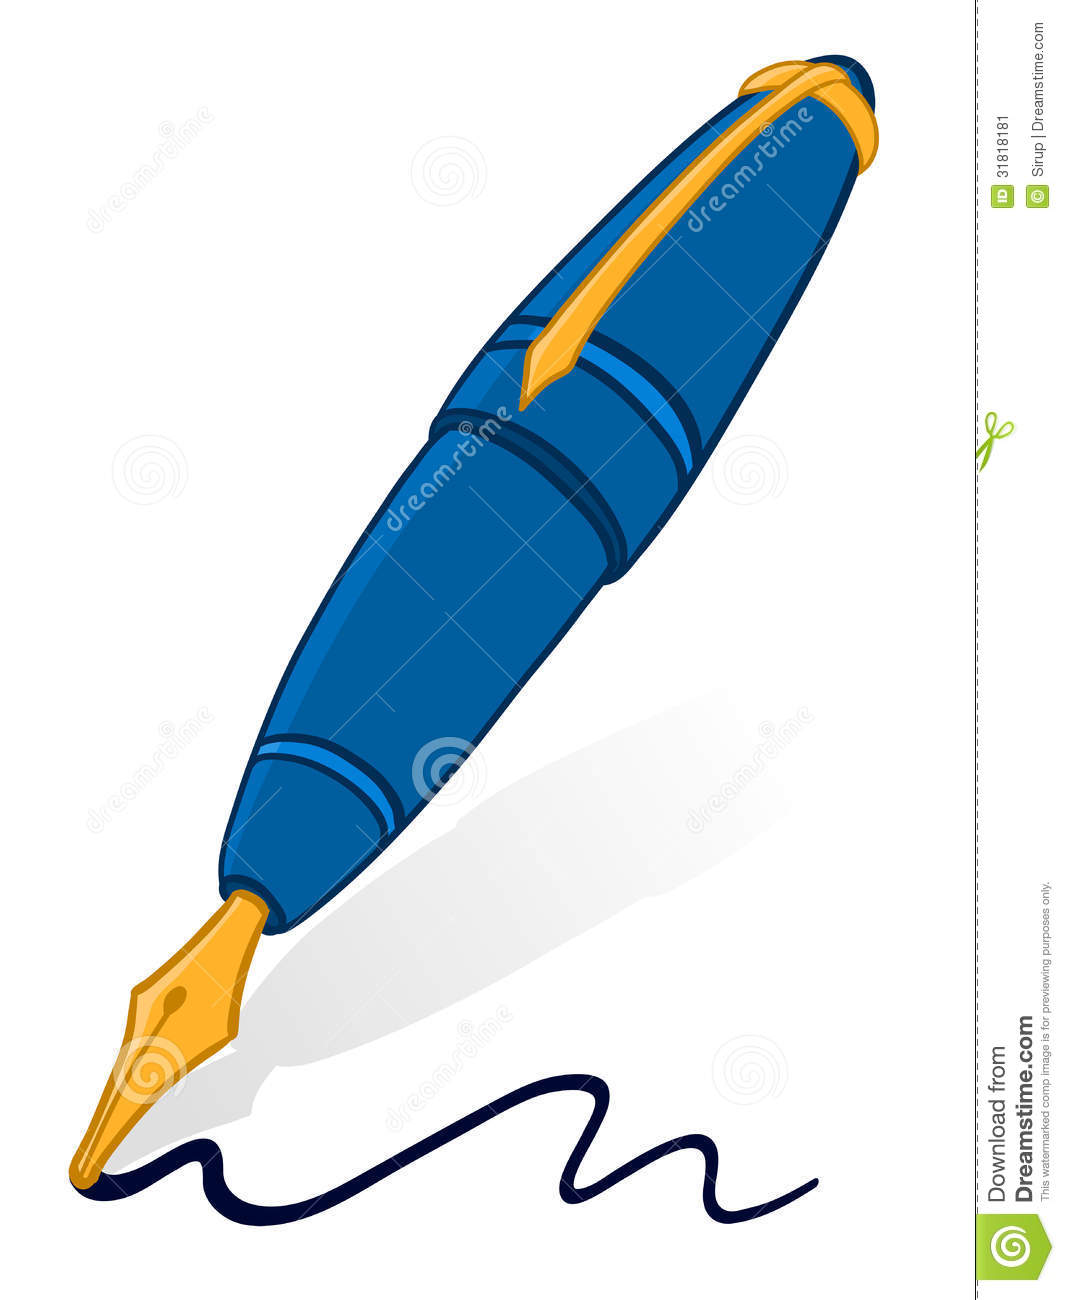 Fountain Pen Clipart   Clipart Panda   Free Clipart Images